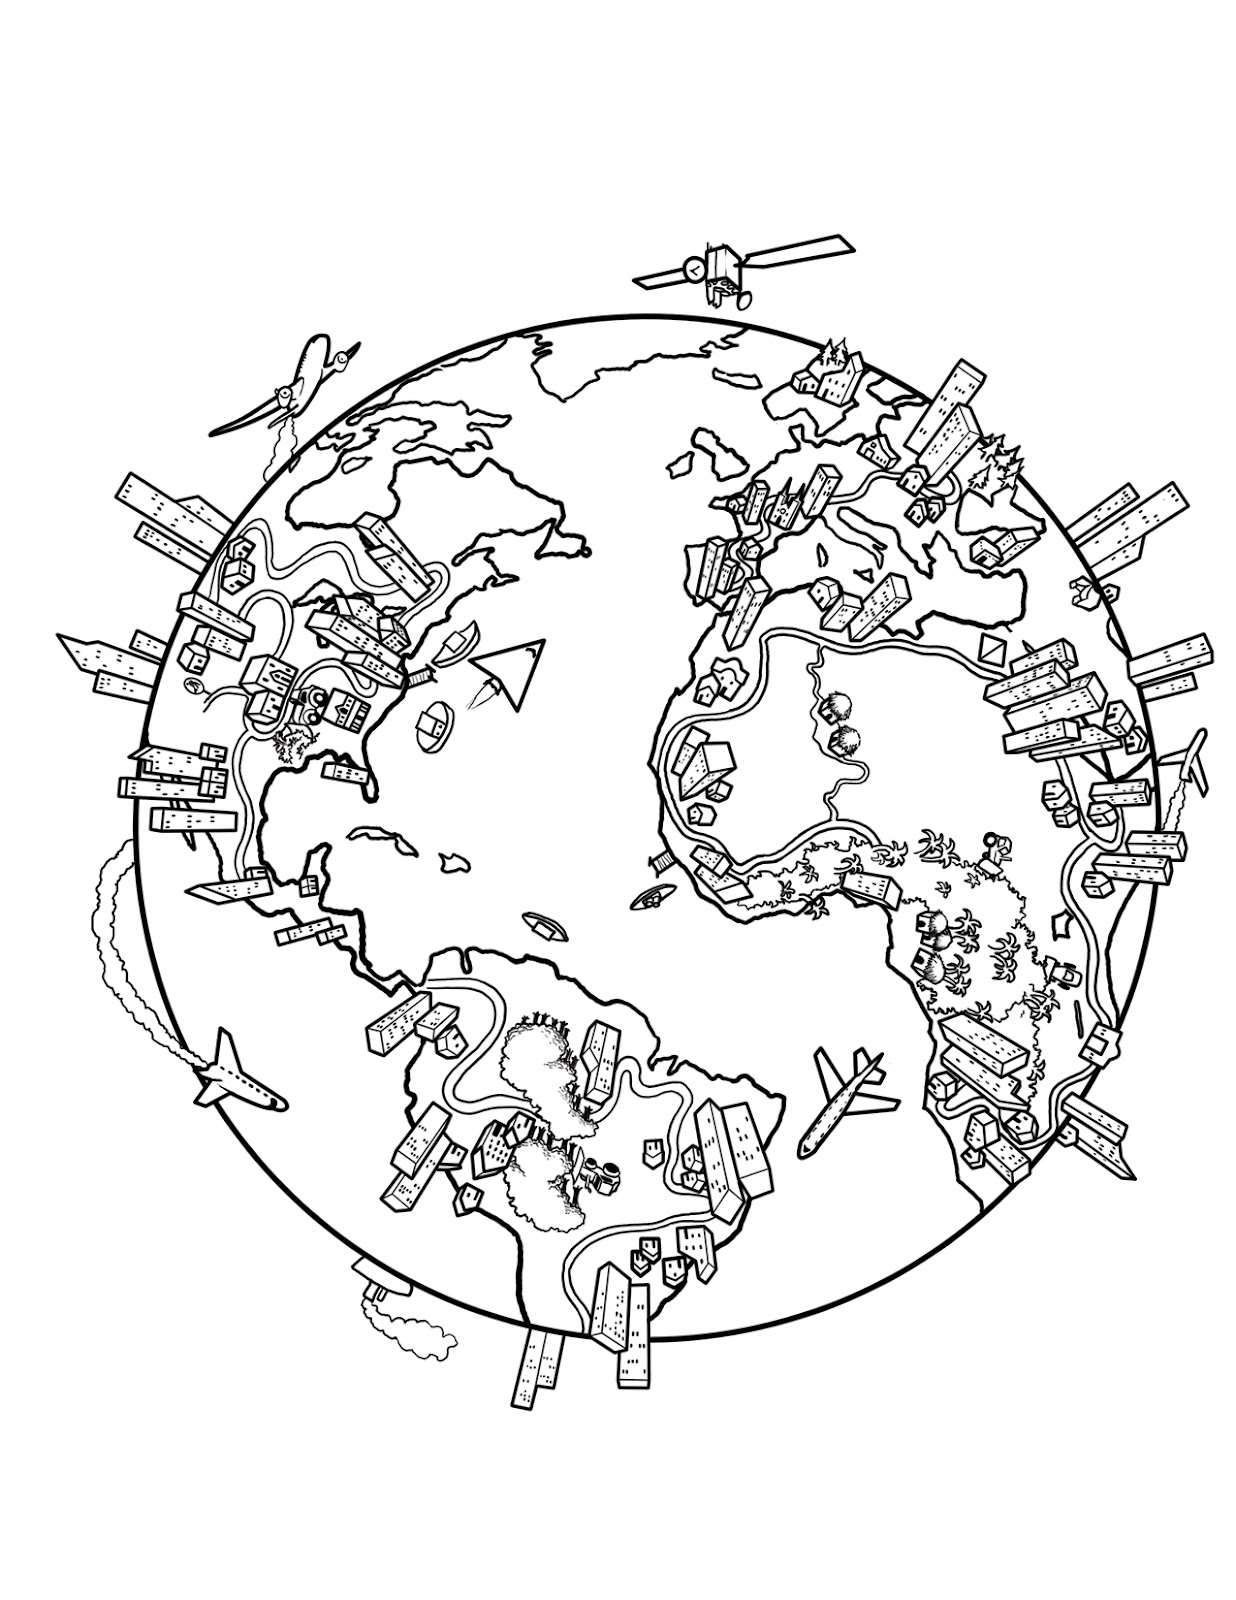 world map coloring sheet world coloring printable page for learning world geography map world coloring sheet